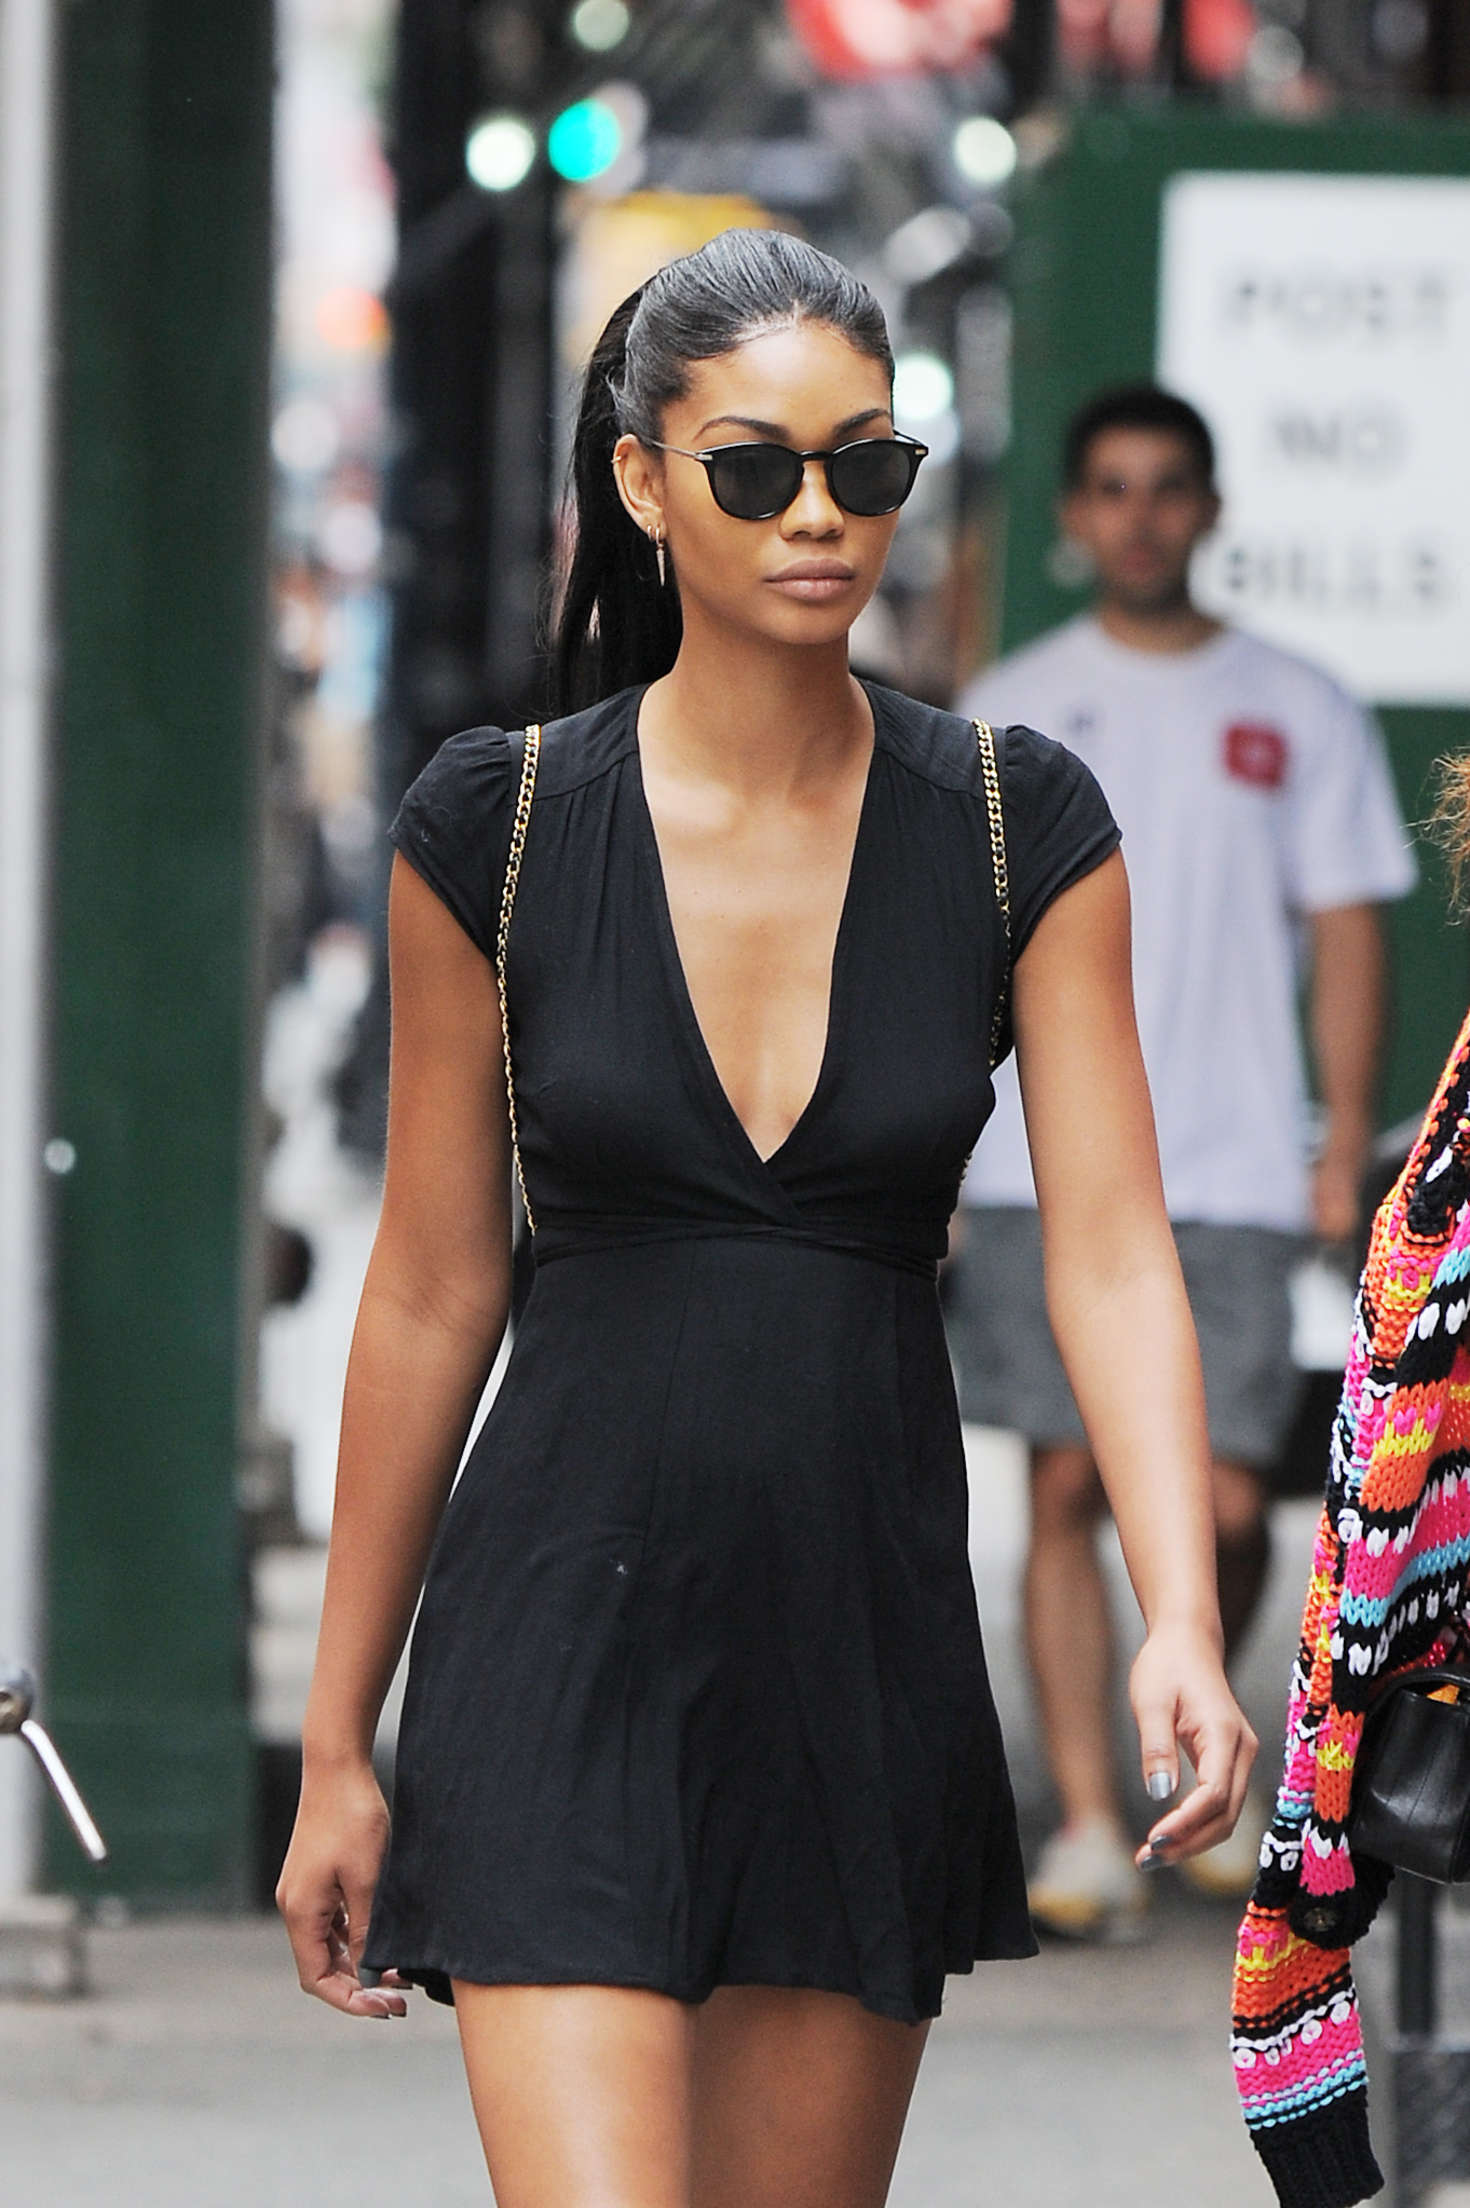 chanel iman in black mini dress out in nyc  u2013 gotceleb